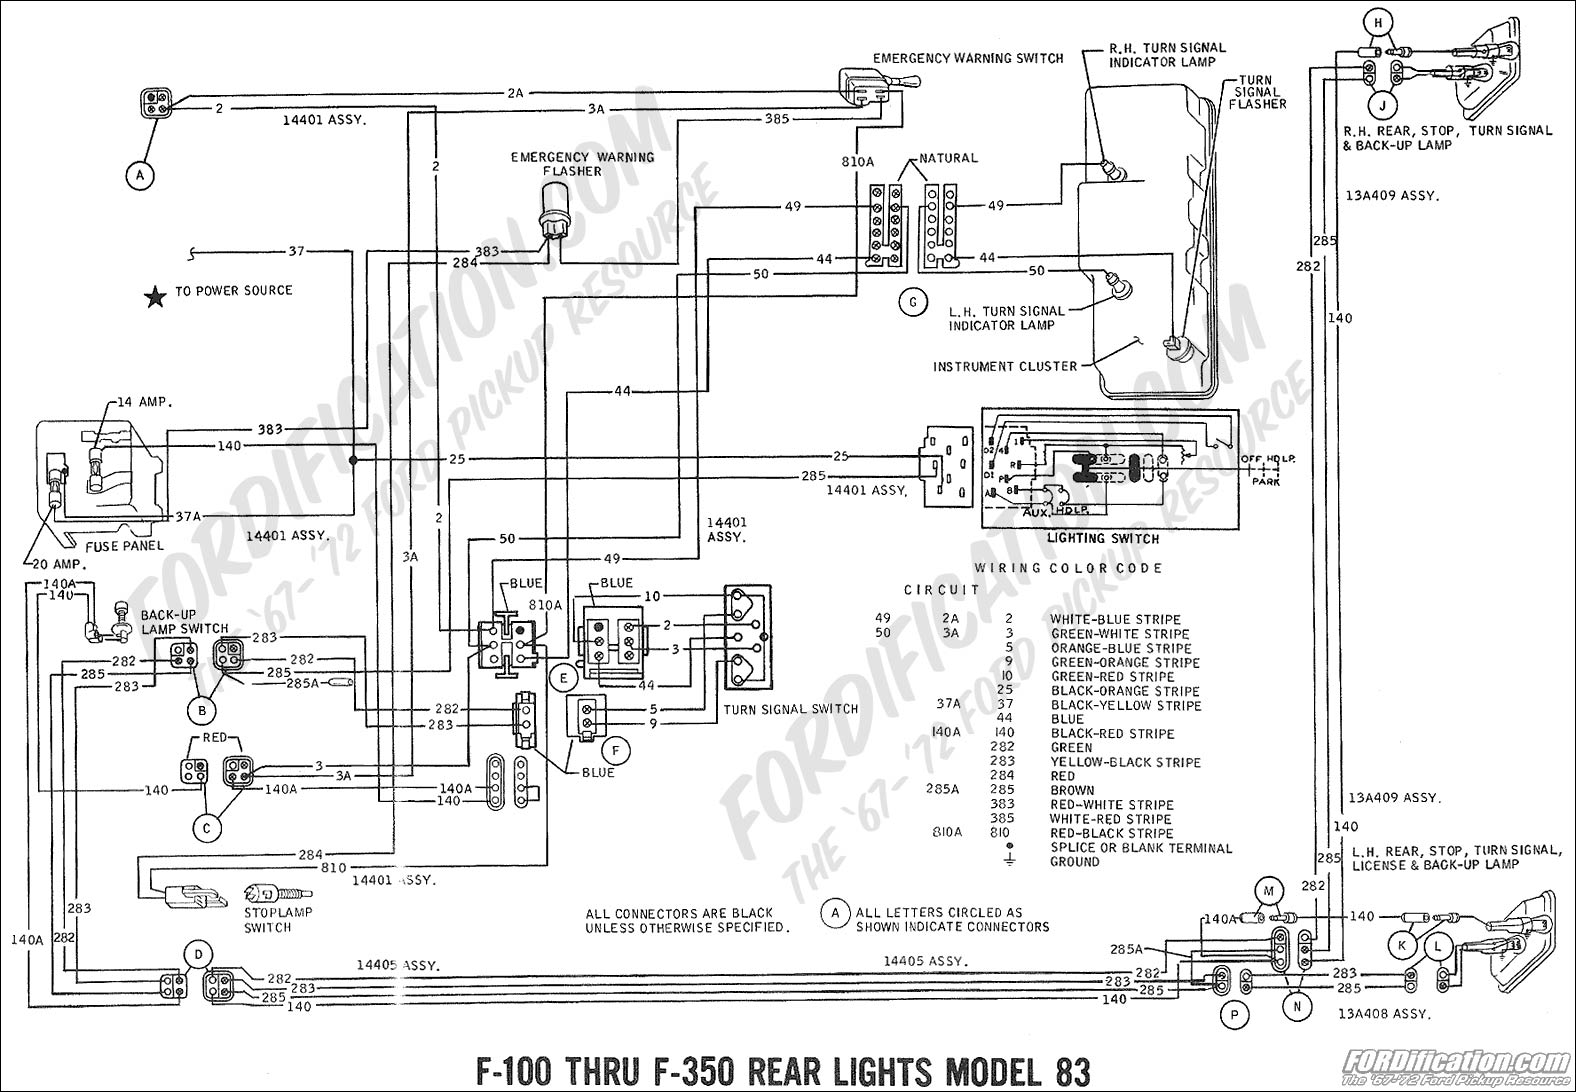 wiring_69rearlights mdl83 2 1977 ford f100 alternator wiring diagram wiring diagram and 1972 ford f100 wiring harness at crackthecode.co